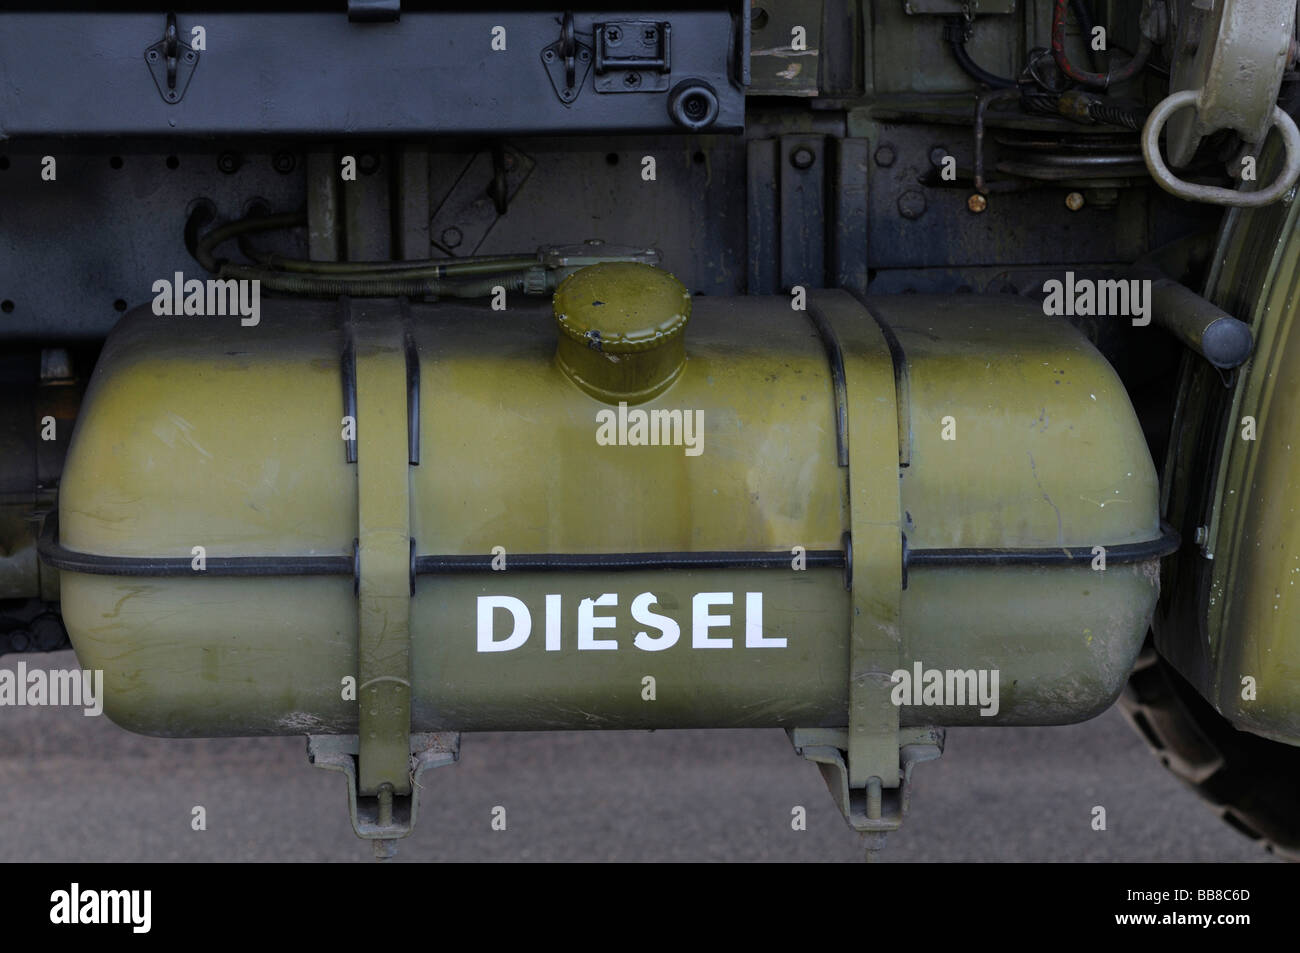 Large fuel tank of a truck in camouflage colours, labelled with Diesel - Stock Image